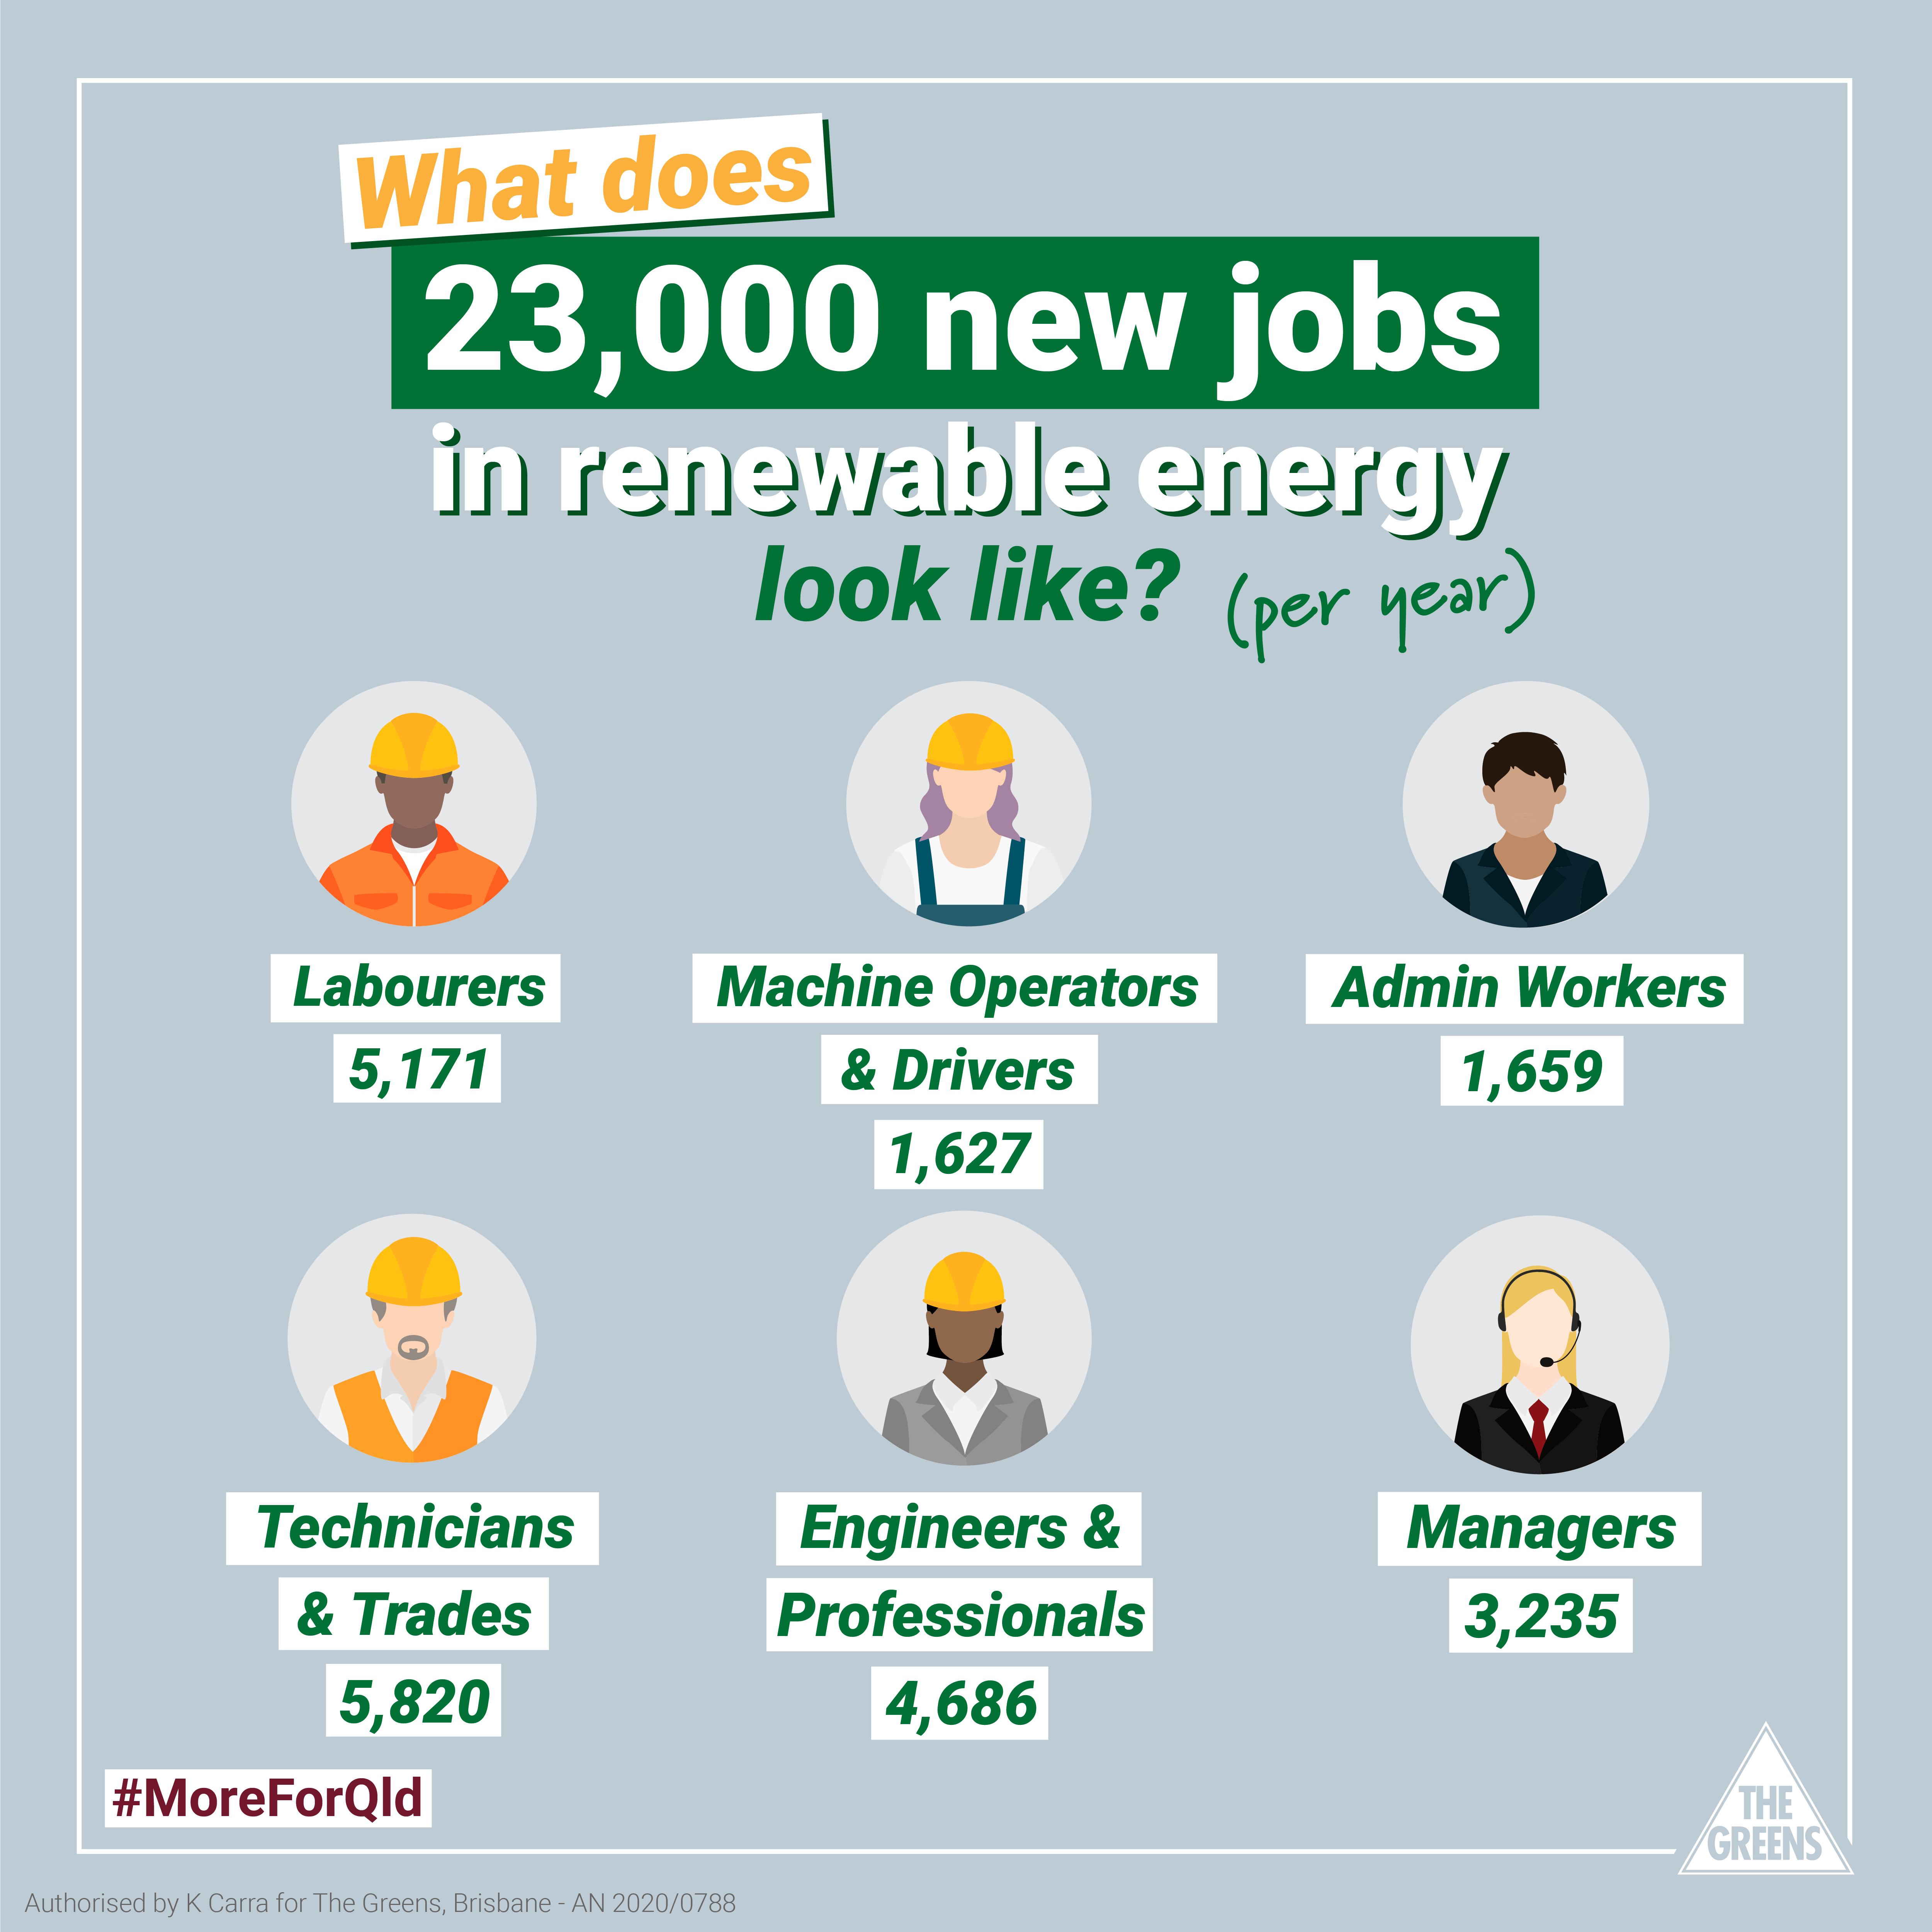 graphic showing breakdown of occupations